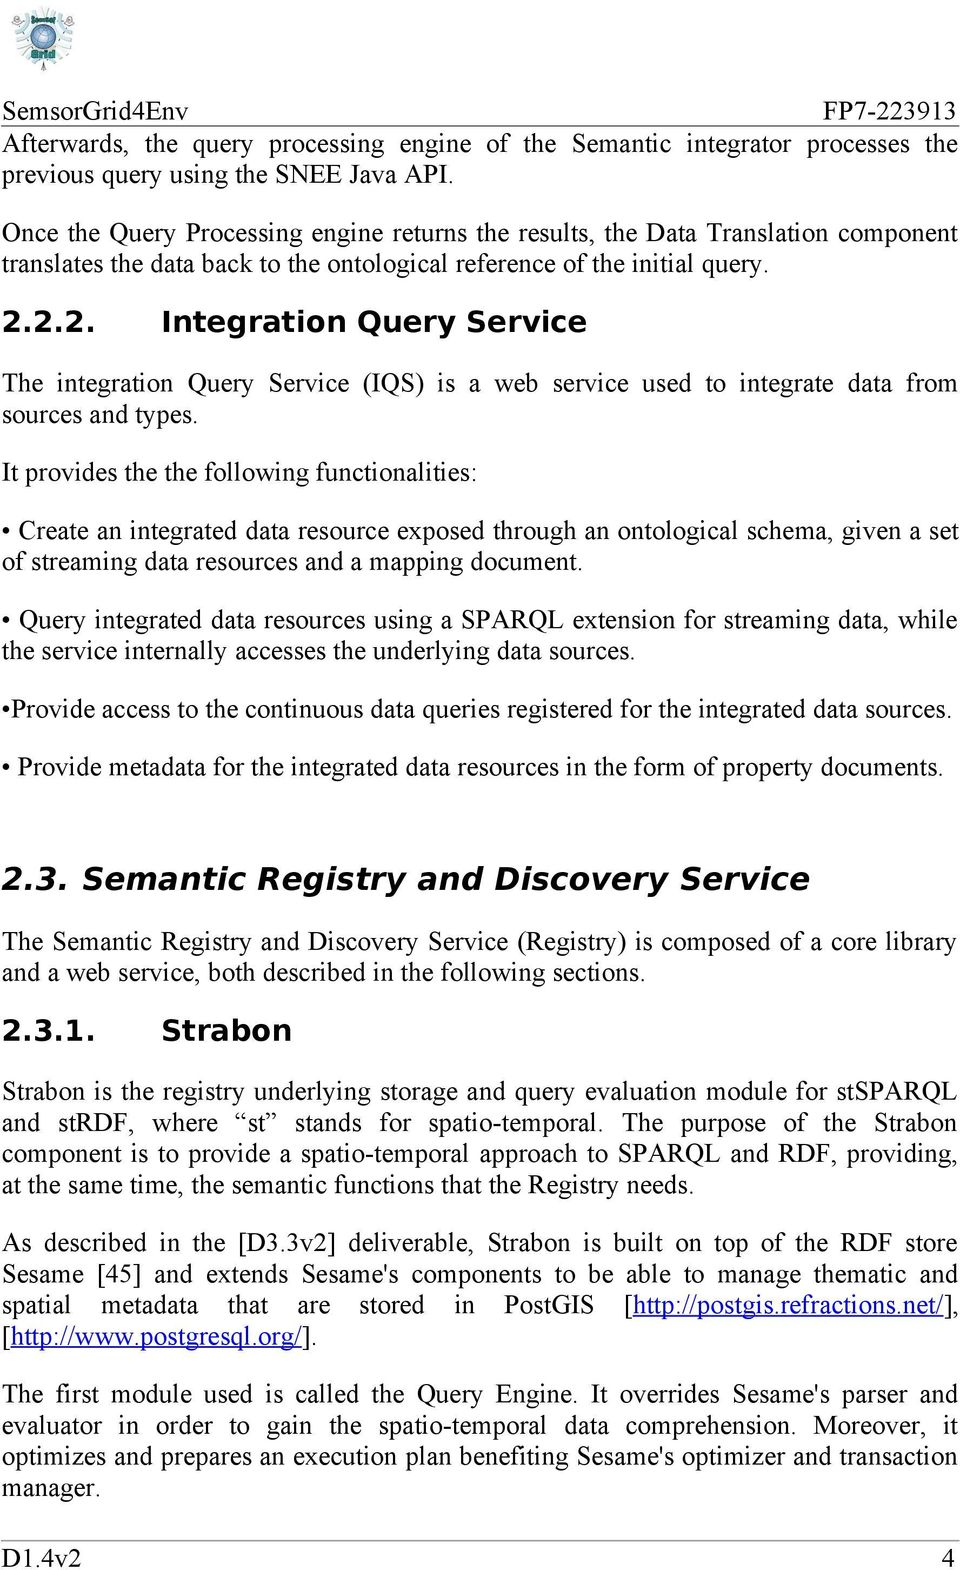 2.2. Integration Query Service The integration Query Service (IQS) is a web service used to integrate data from sources and types.